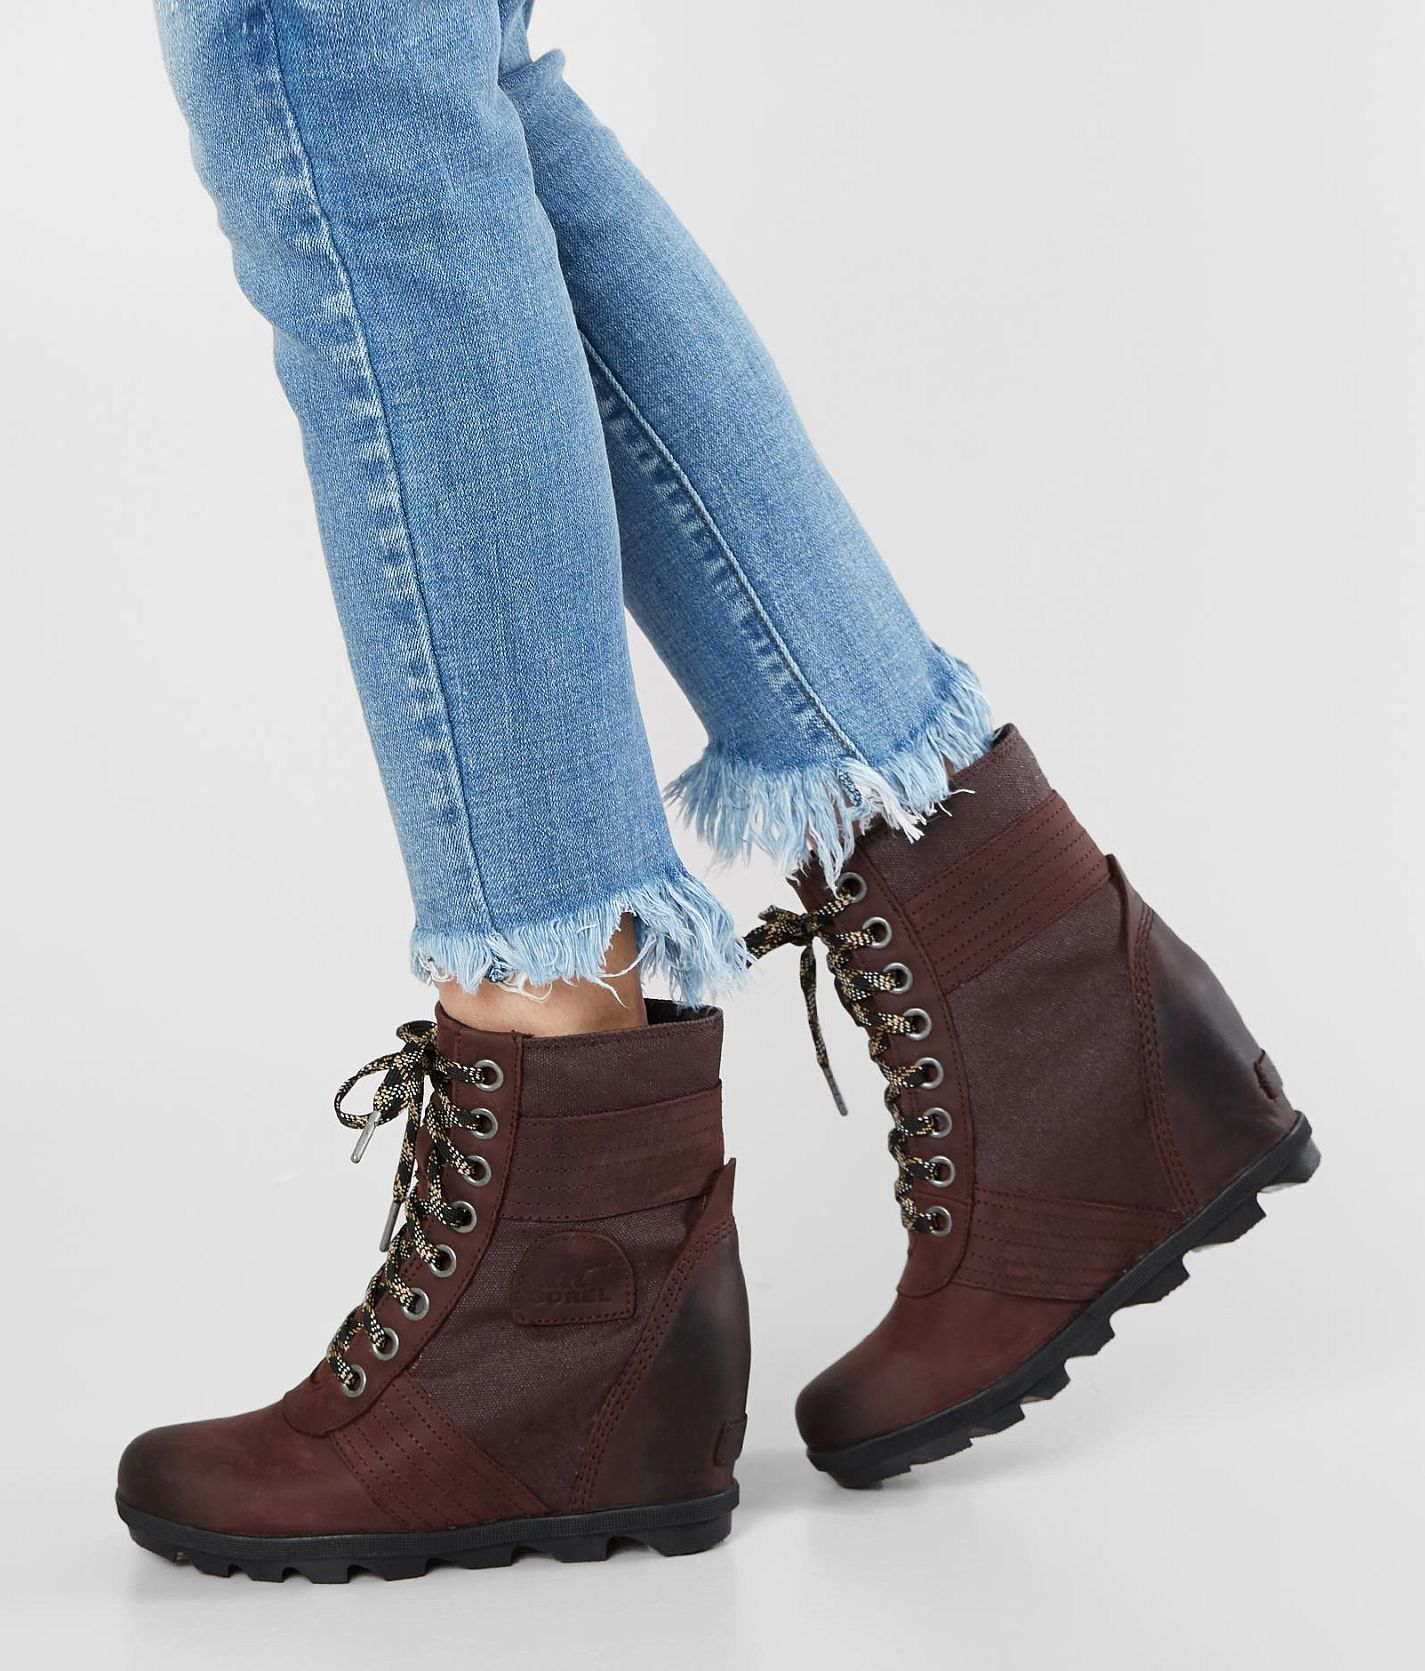 86341c863e Sorel Lexie™ Leather Wedge Boot - Women s Shoes in Cattail